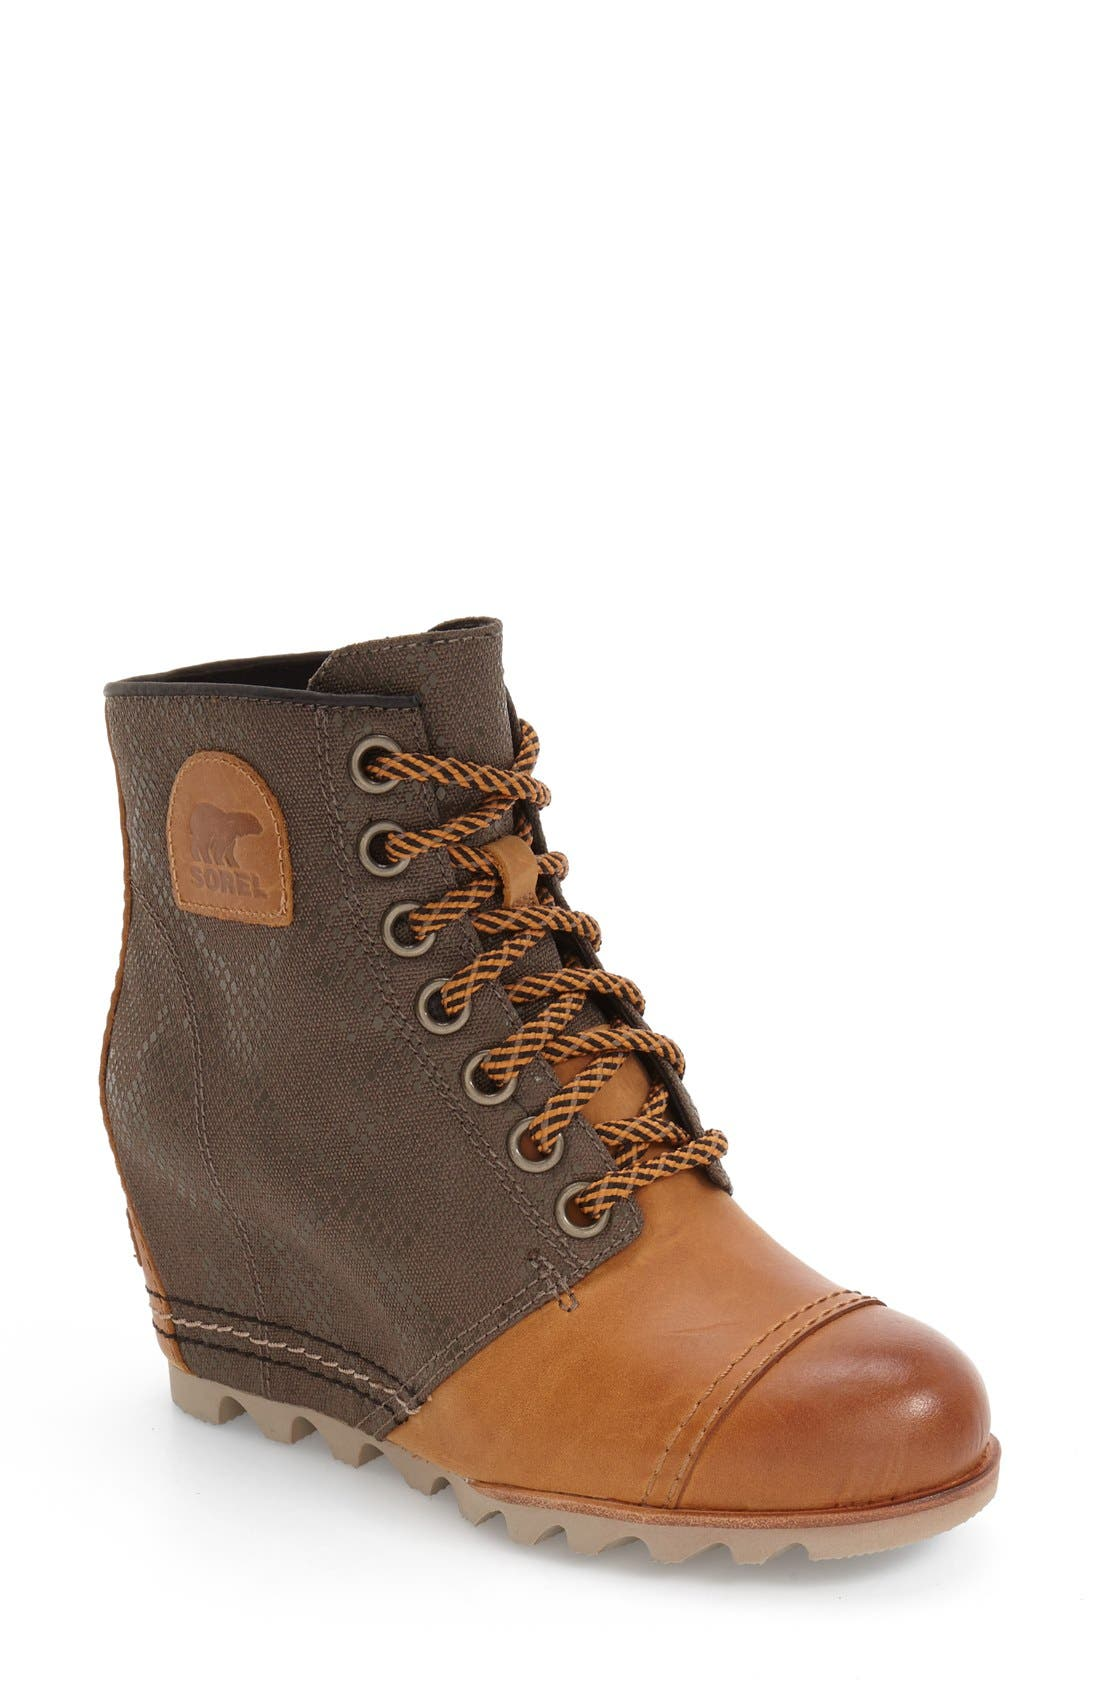 '1964 Premium Canvas' Waterproof Wedge Bootie,                             Main thumbnail 1, color,                             Elk